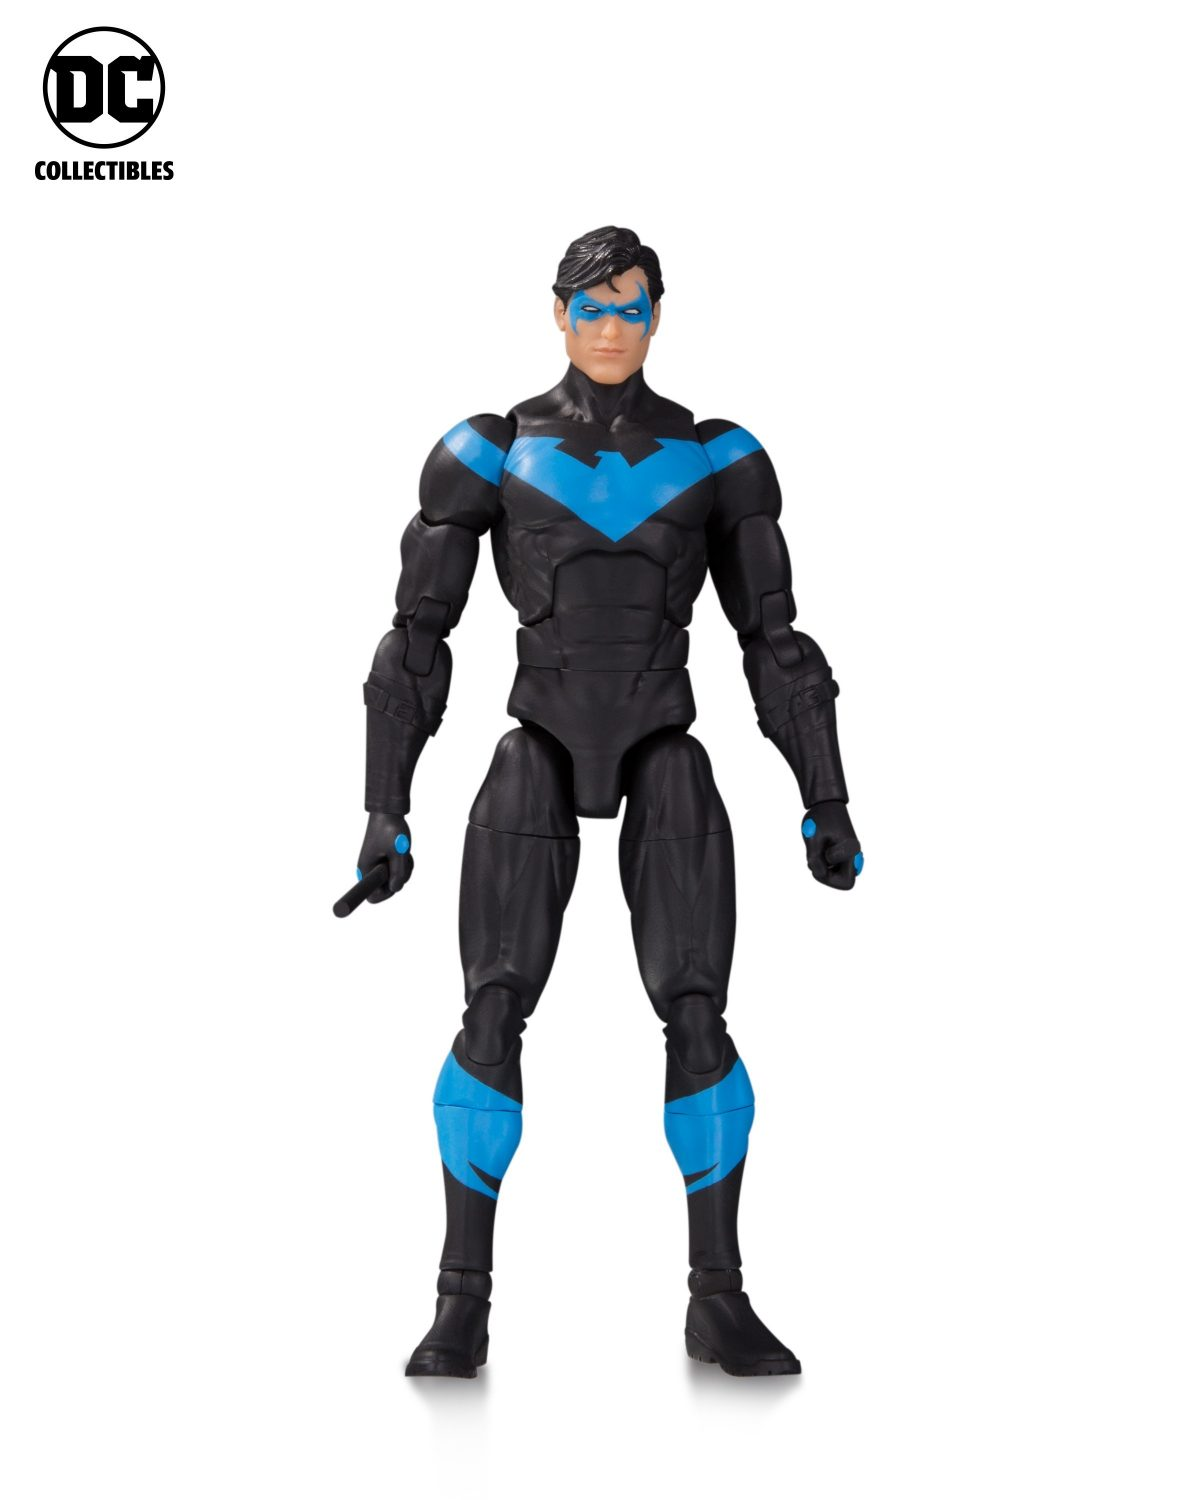 DC Collectibles Shipping This Week – DC Essentials Harley Quinn & Nightwing Figures